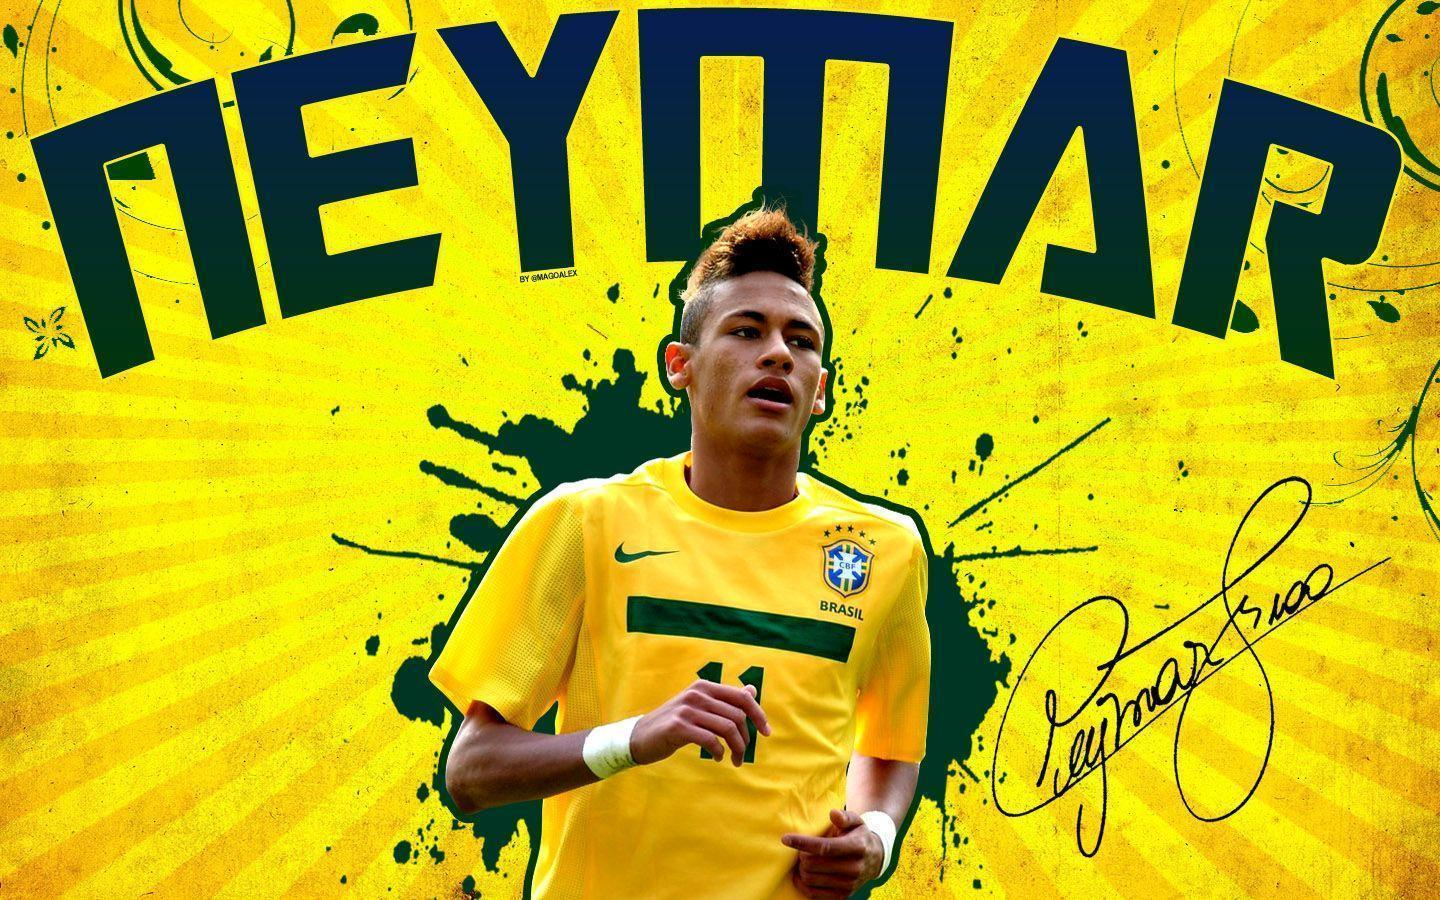 Neymar jr Wallpaper HD Facebook Cover • iPhones Wallpapers